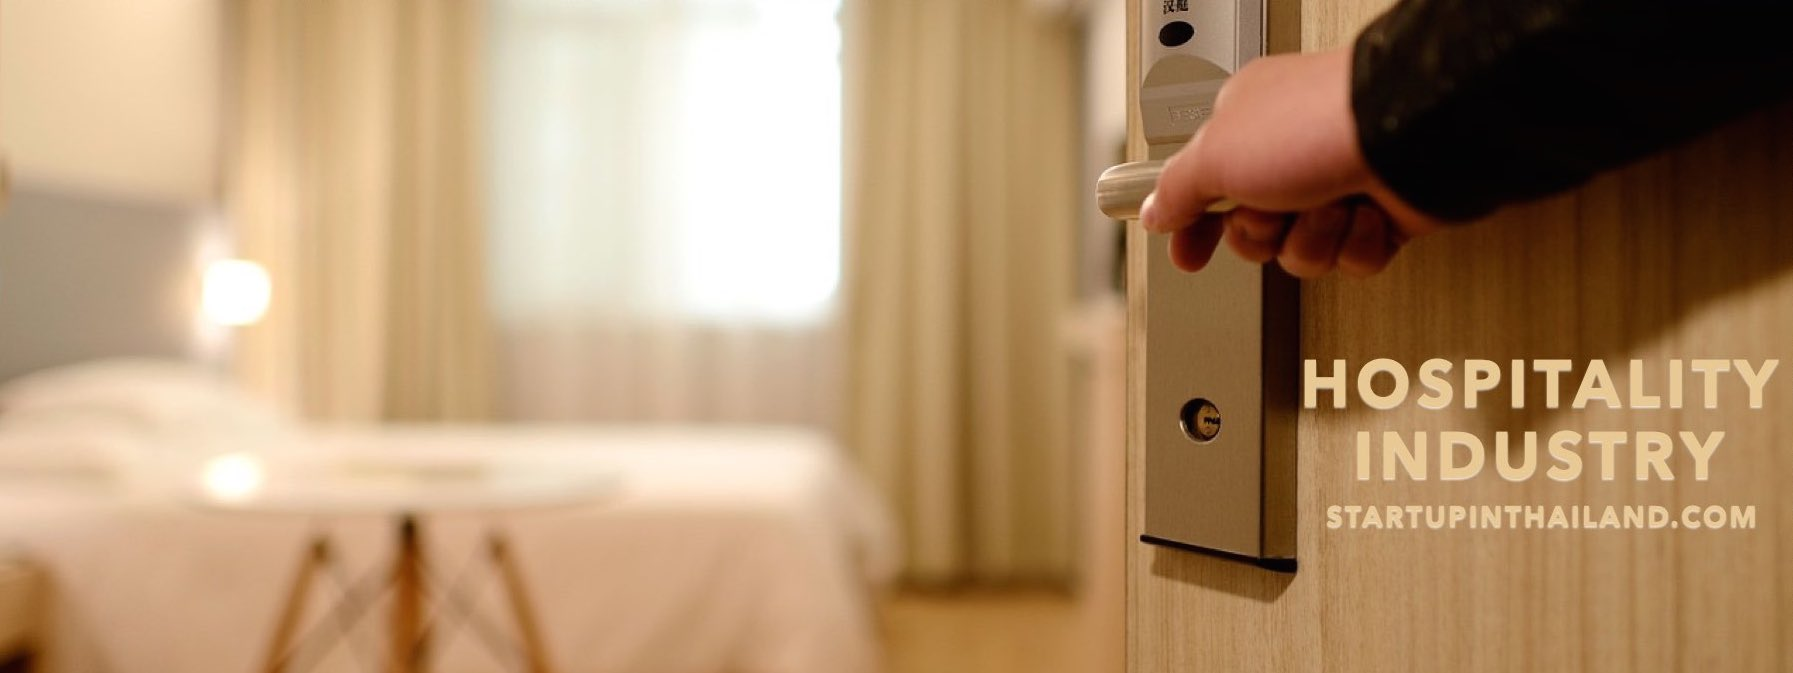 A door in a hotel opened by a service crew showing only the right hand on grip of the door handle of the room